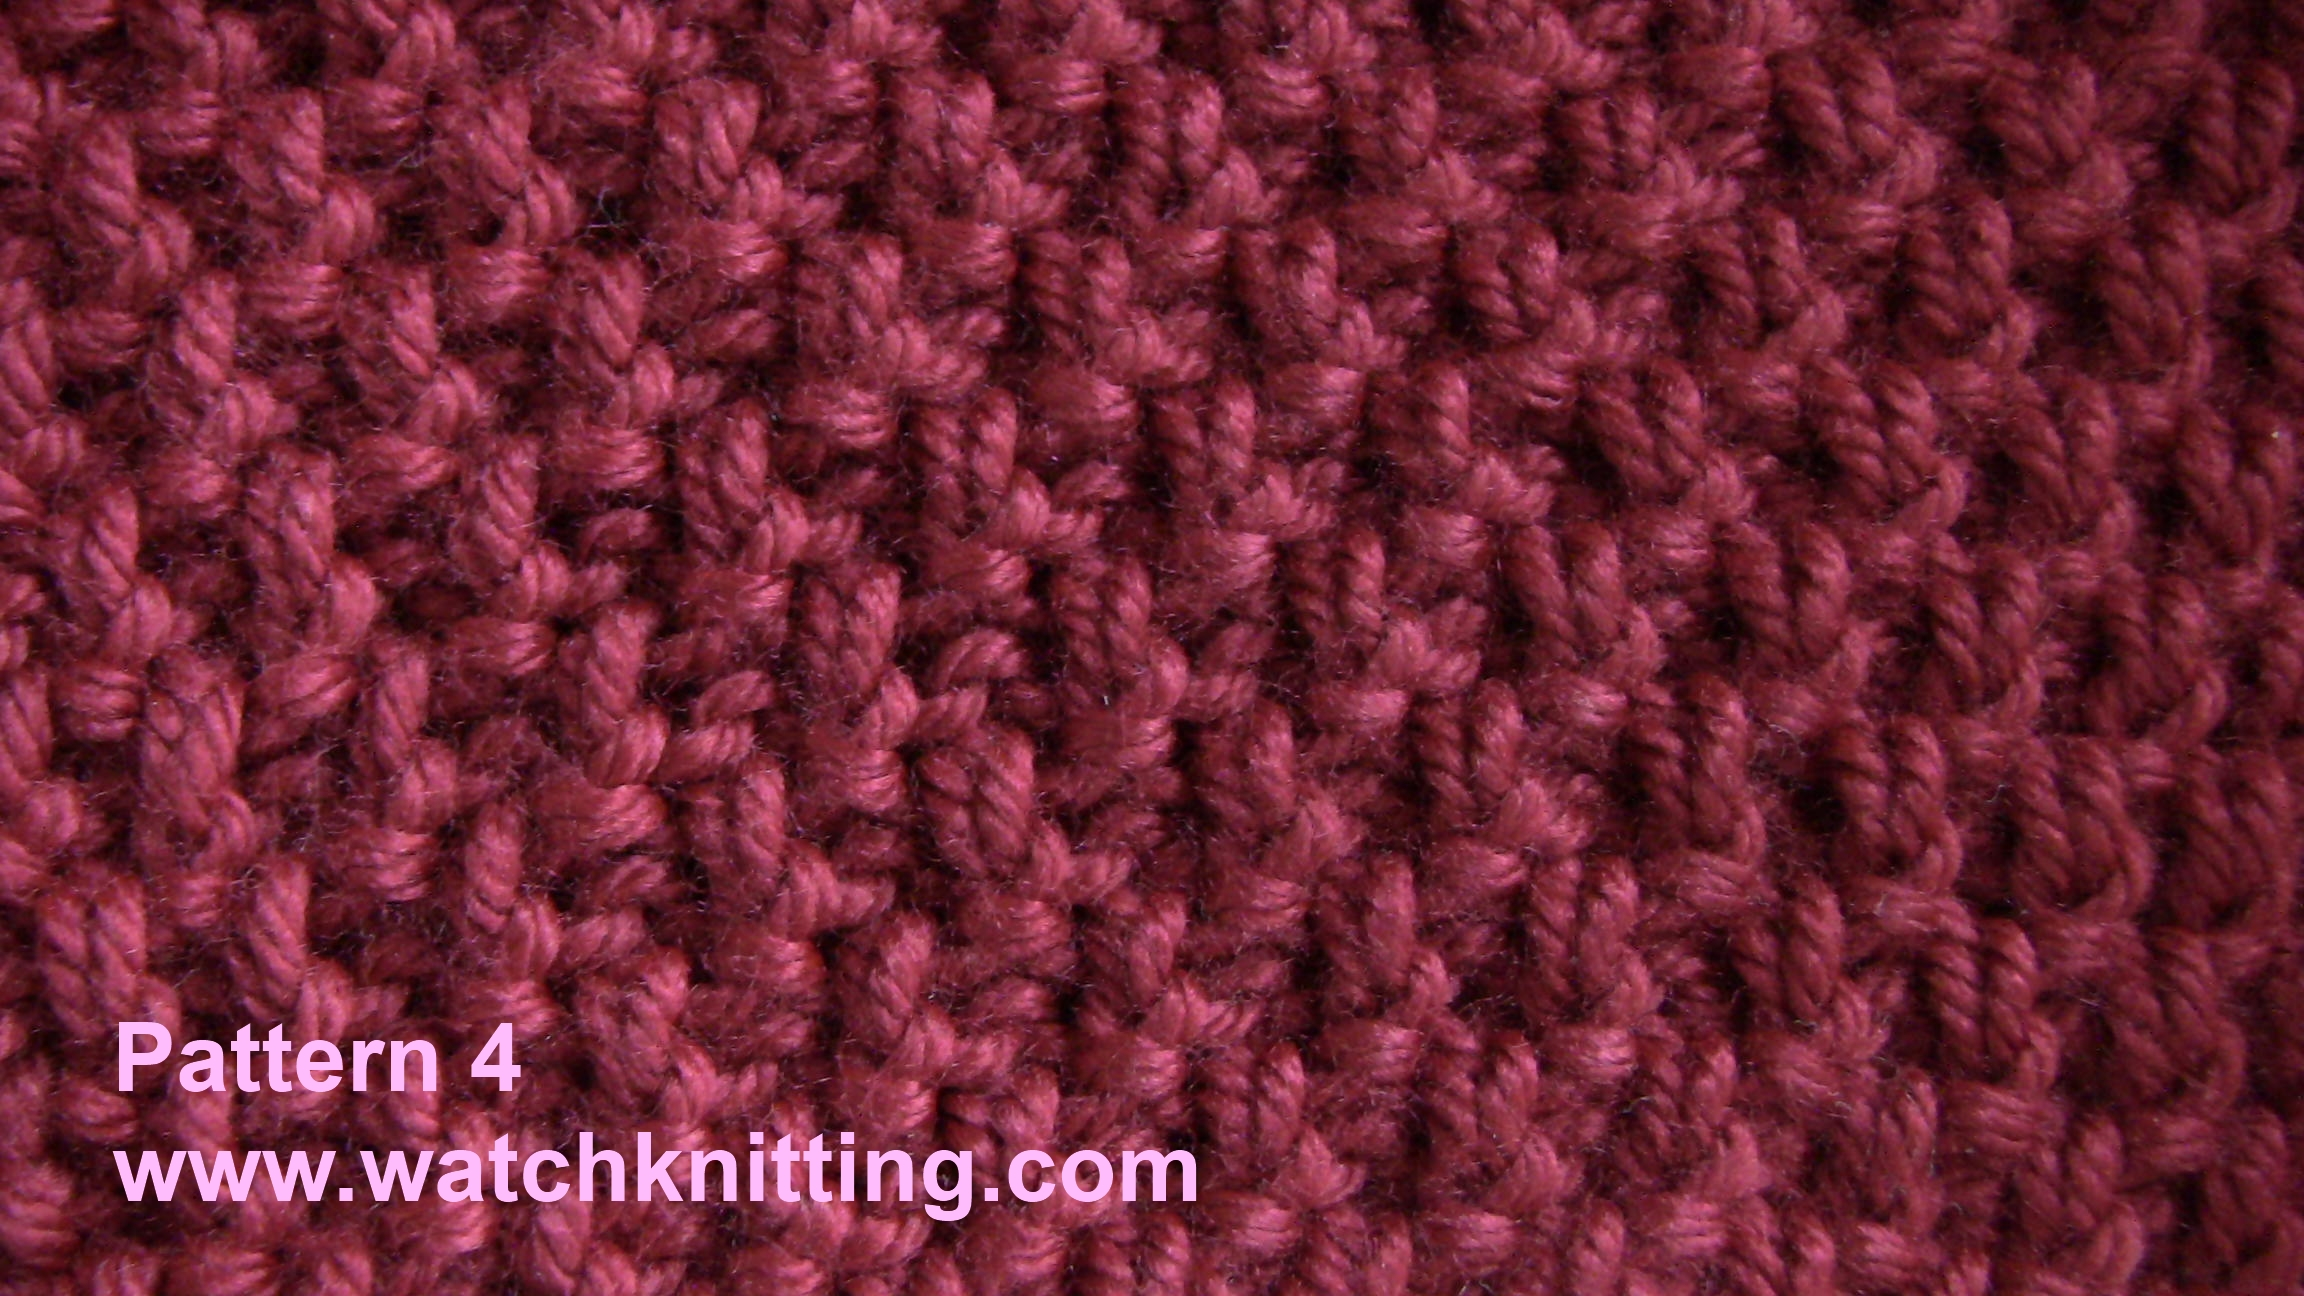 Simple Knitting Stitch Patterns : Basic Knitting Stitches Watch knitting